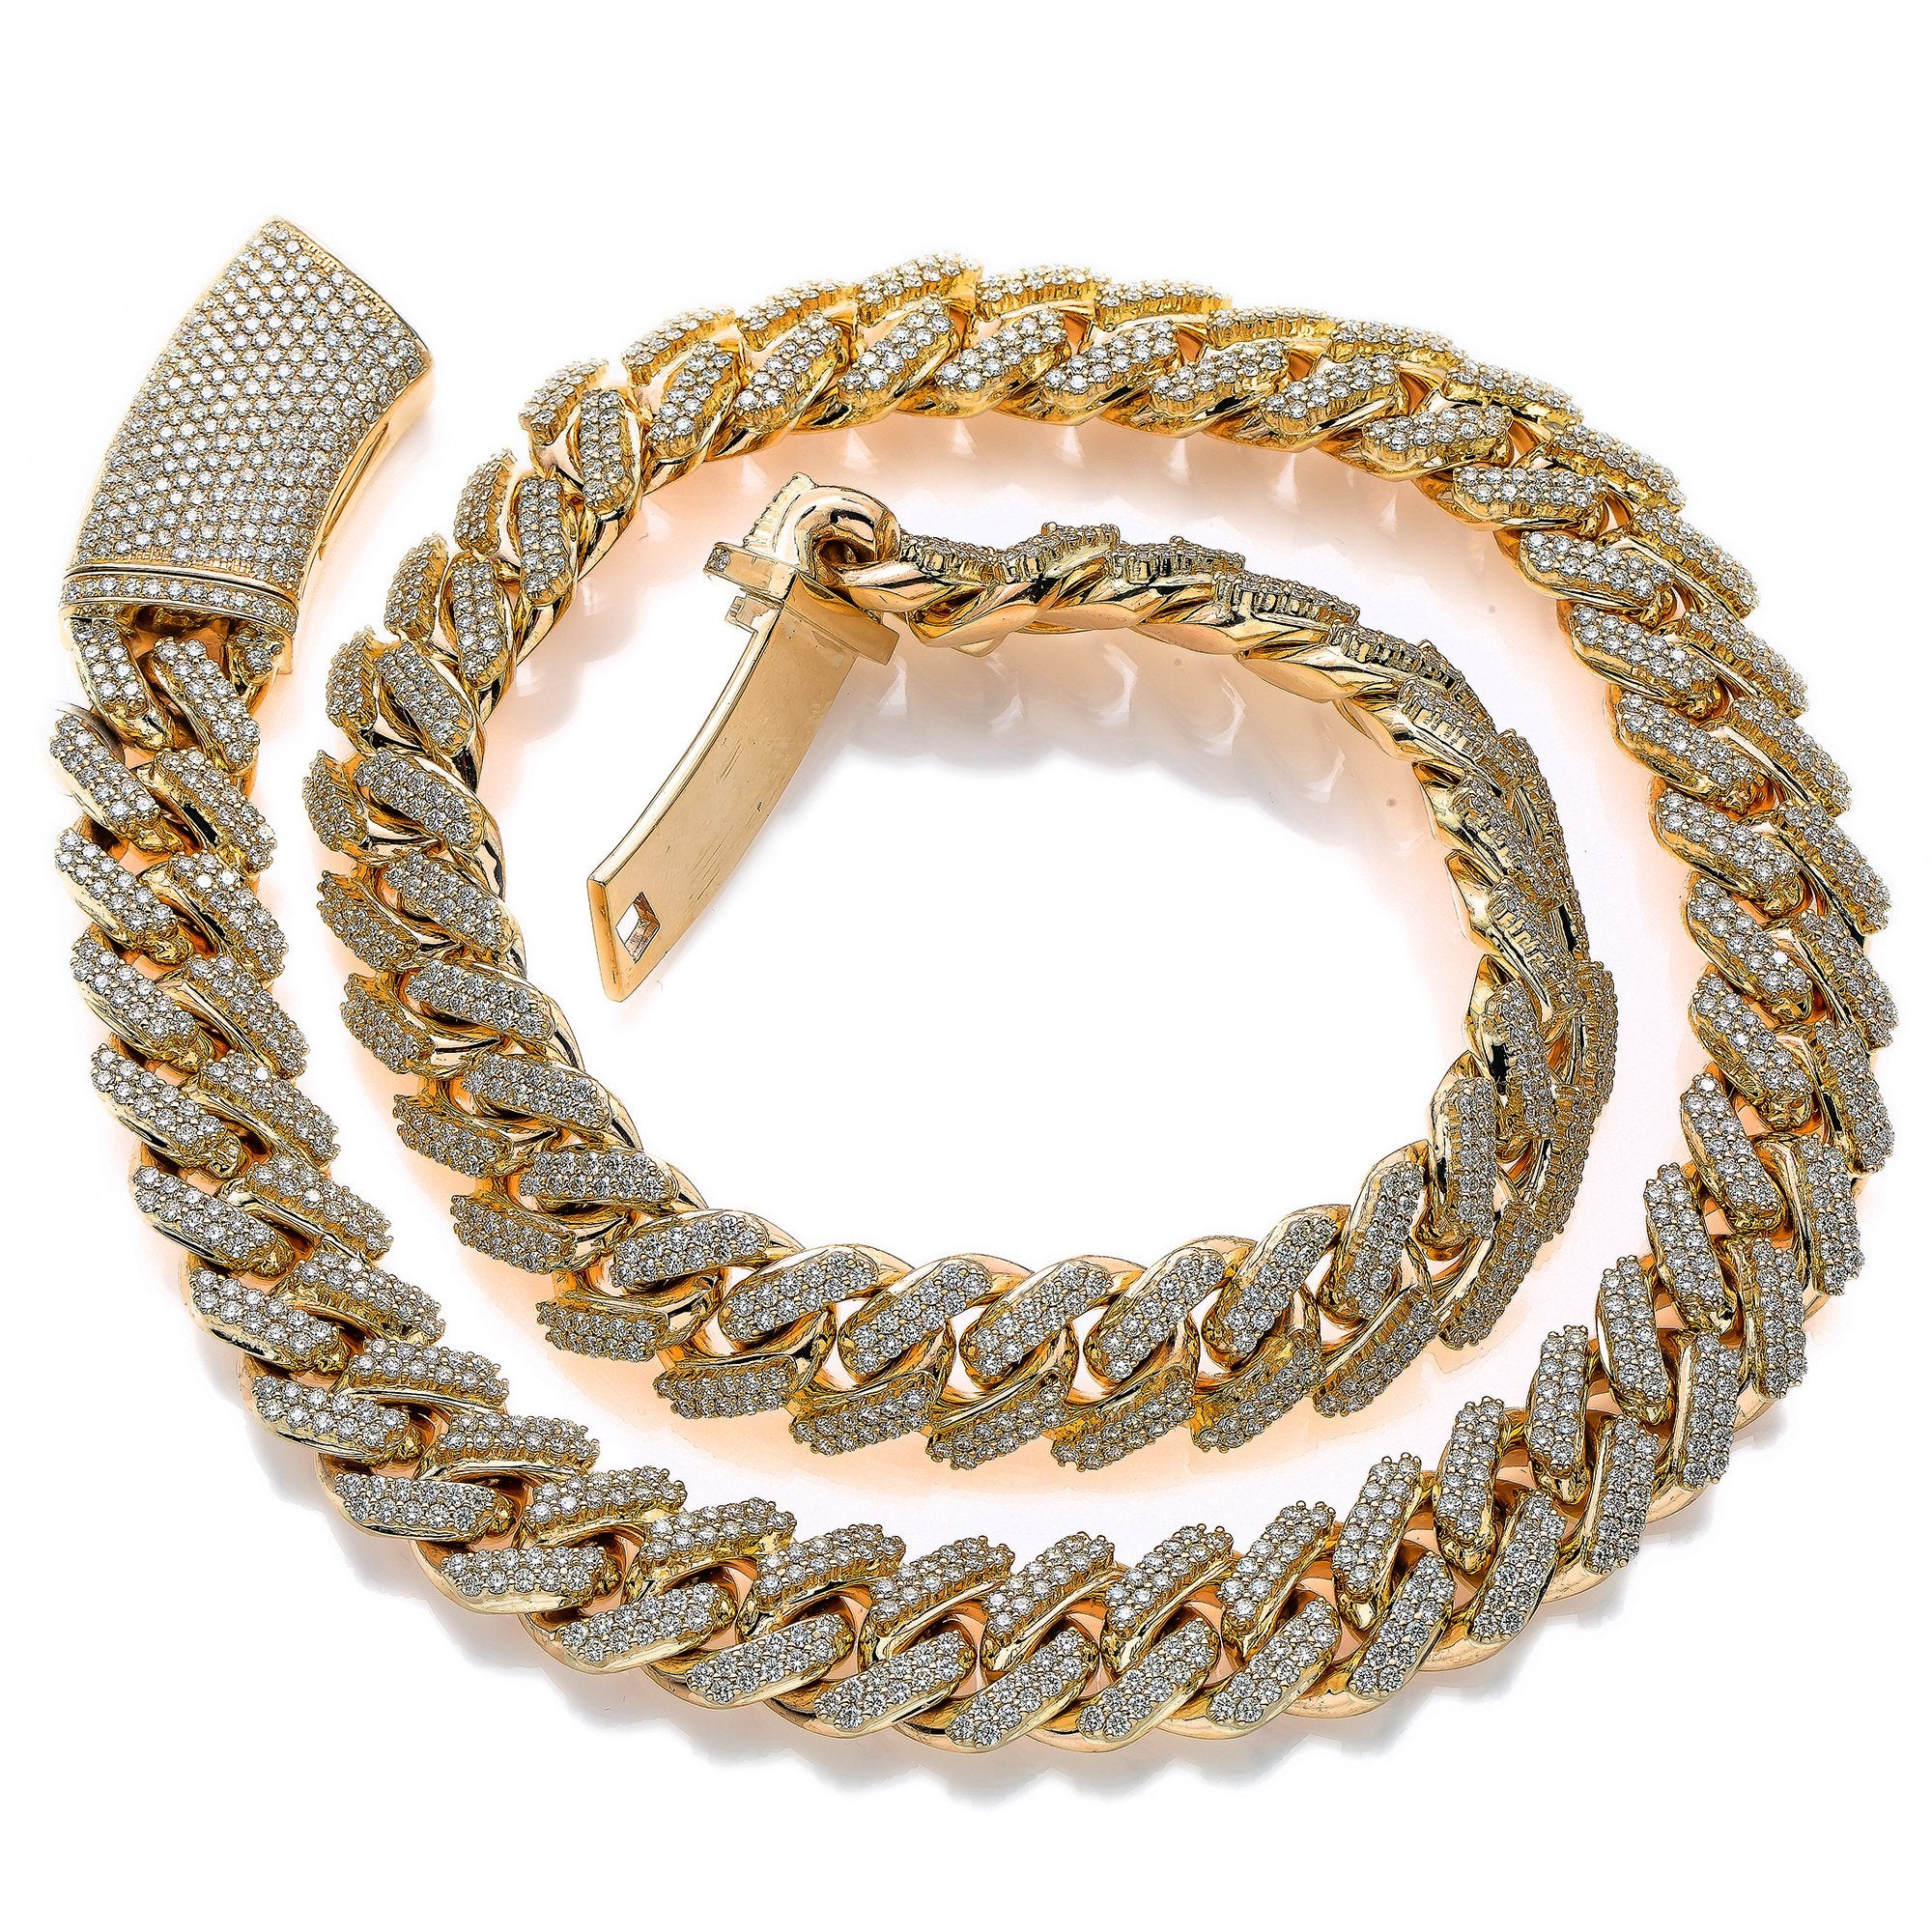 14K Yellow Gold Men's Cuban Chain With 37.86 CT Diamonds